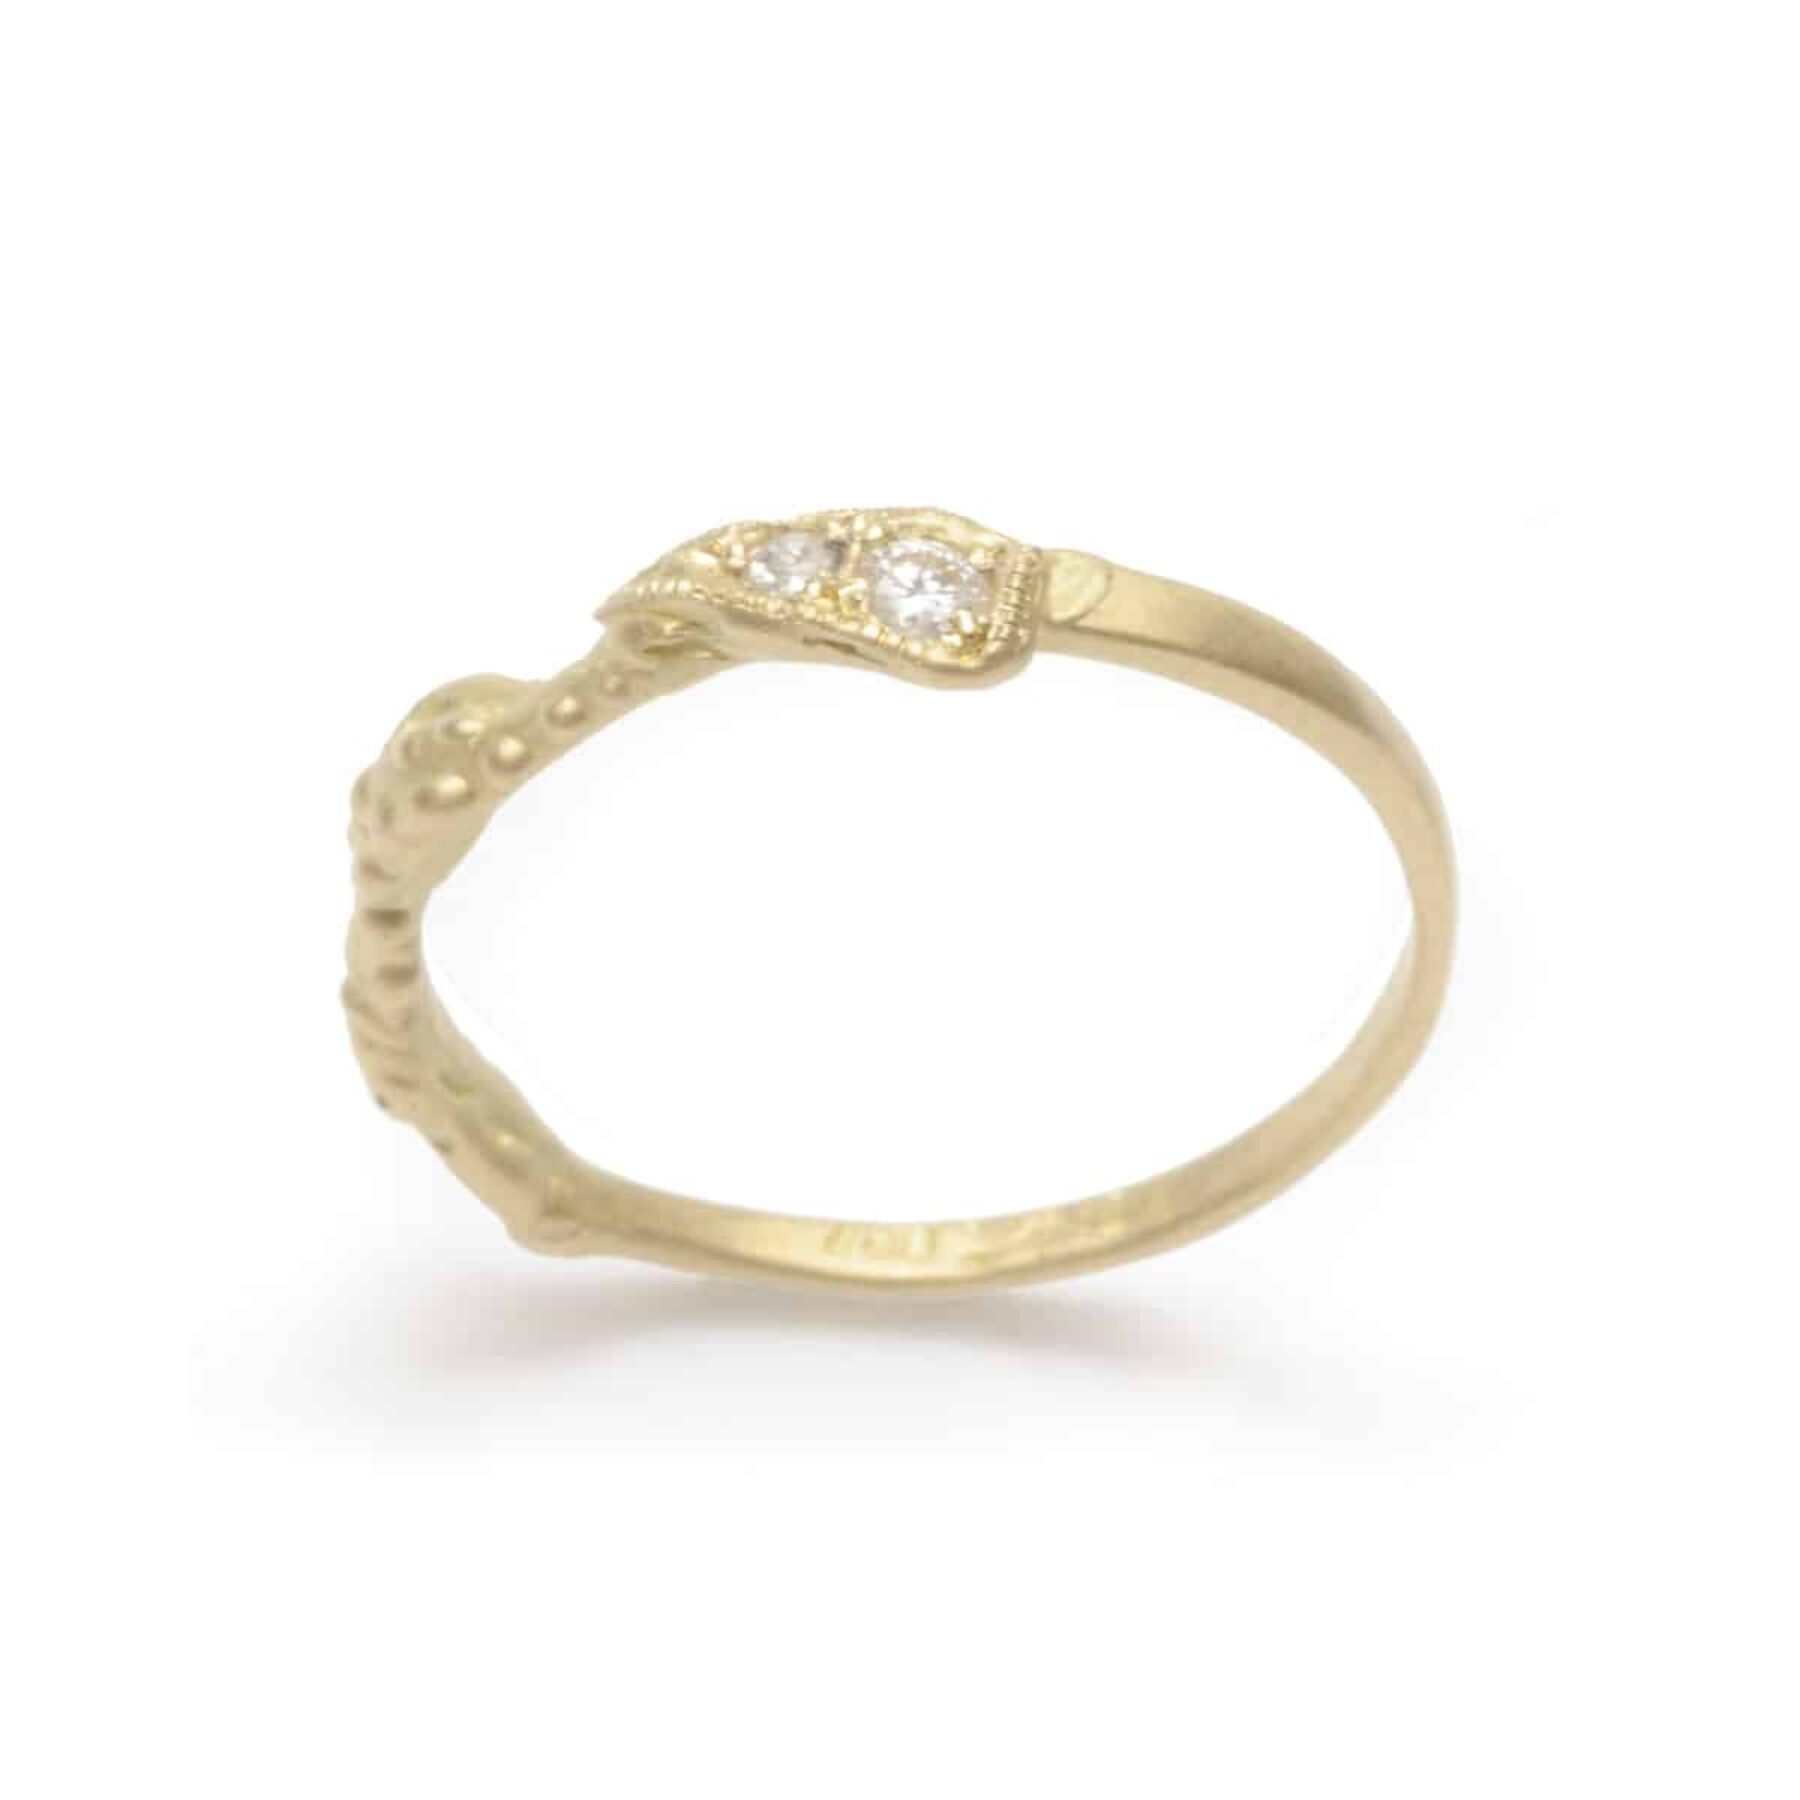 Art Deco gold diamond wedding ring by Julia Deville